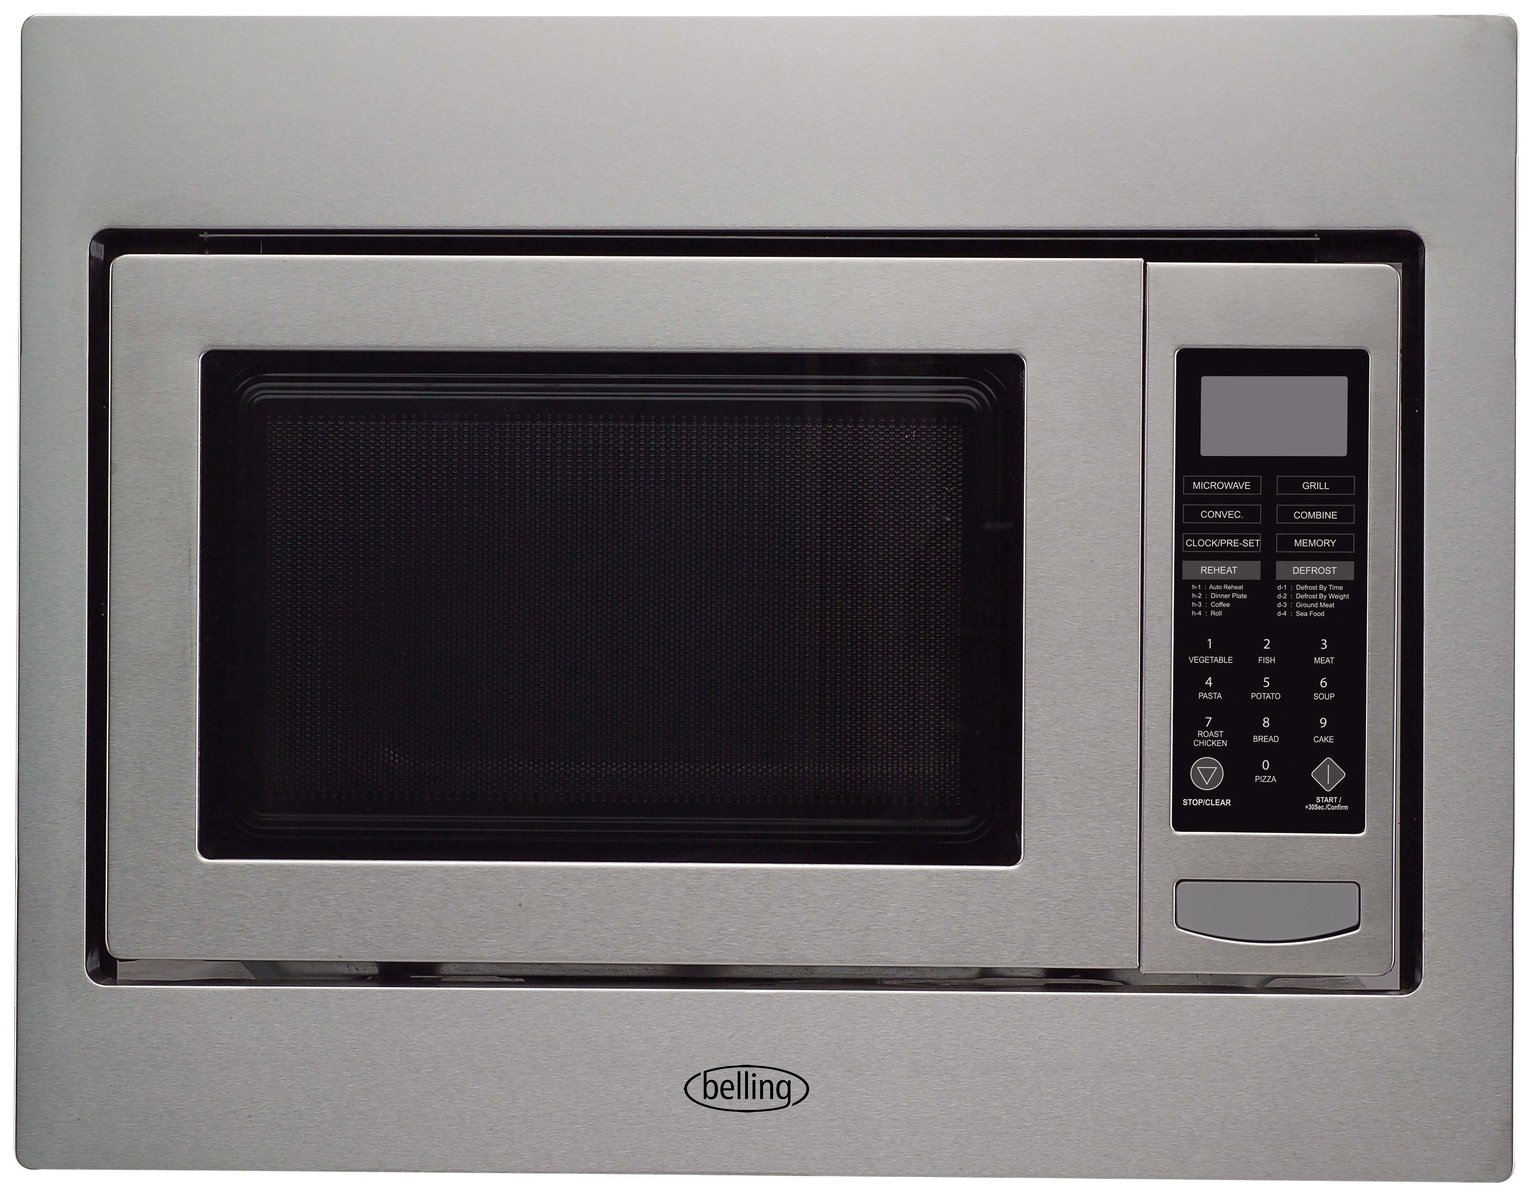 Image of Belling BIMW60 Built-in Microwave - Stainless Steel